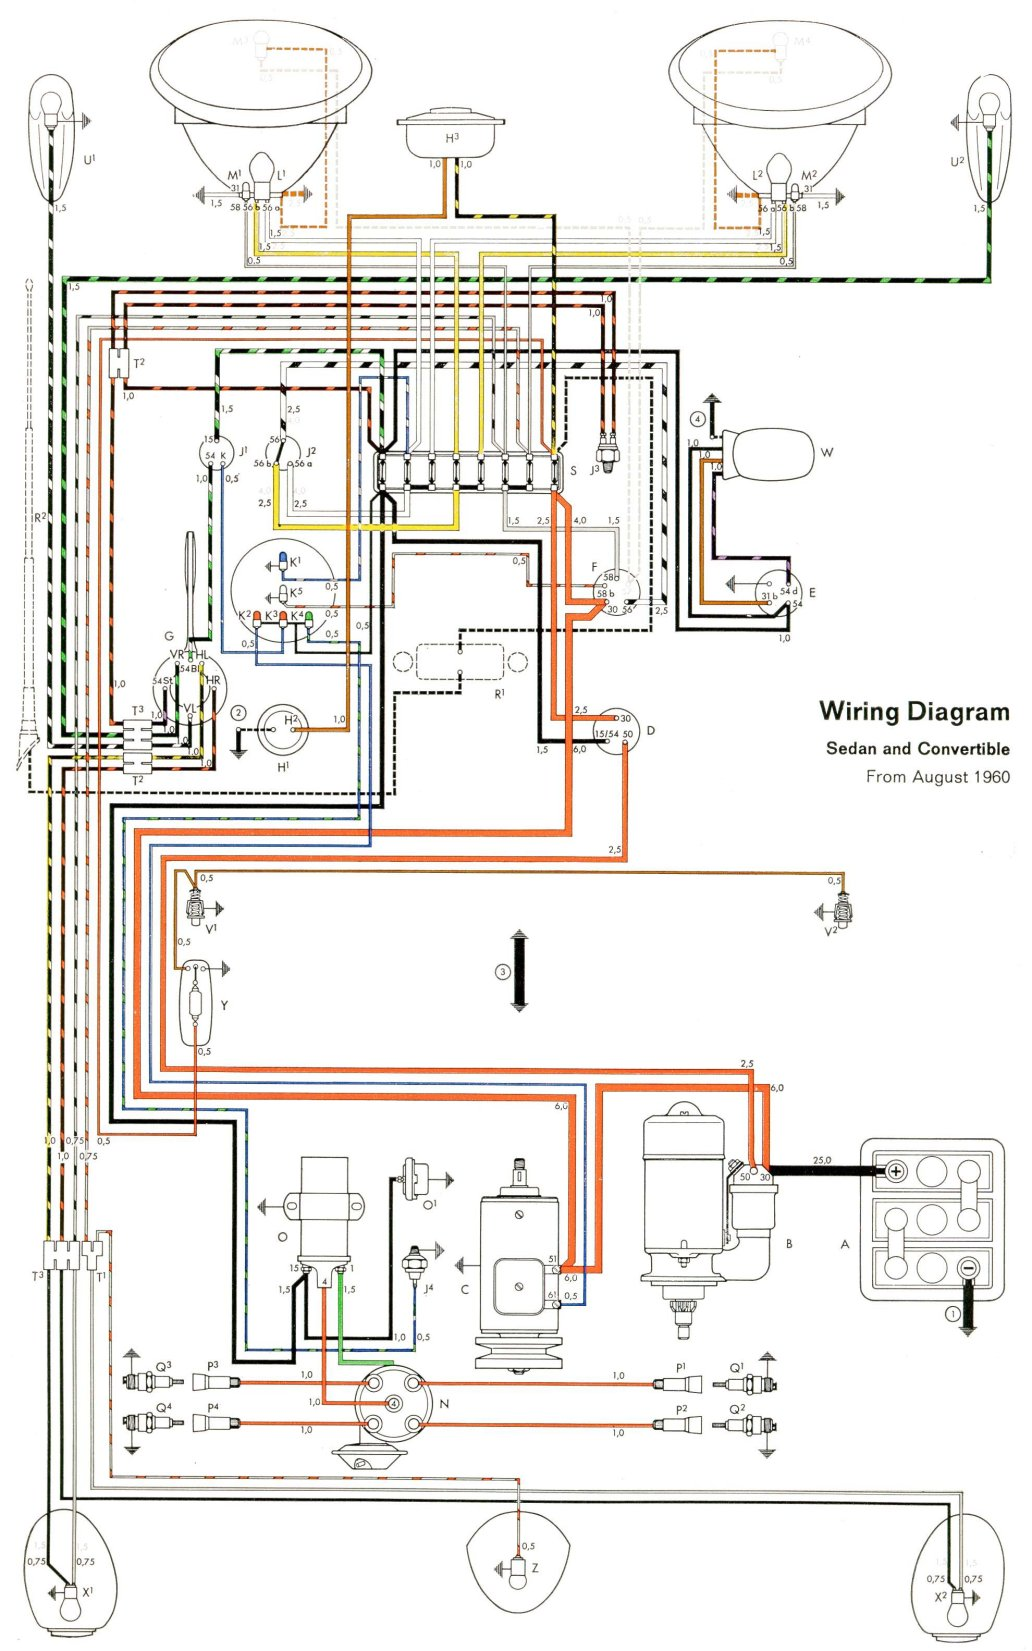 bug_61 thesamba com type 1 wiring diagrams vw beetle wiring diagram at creativeand.co